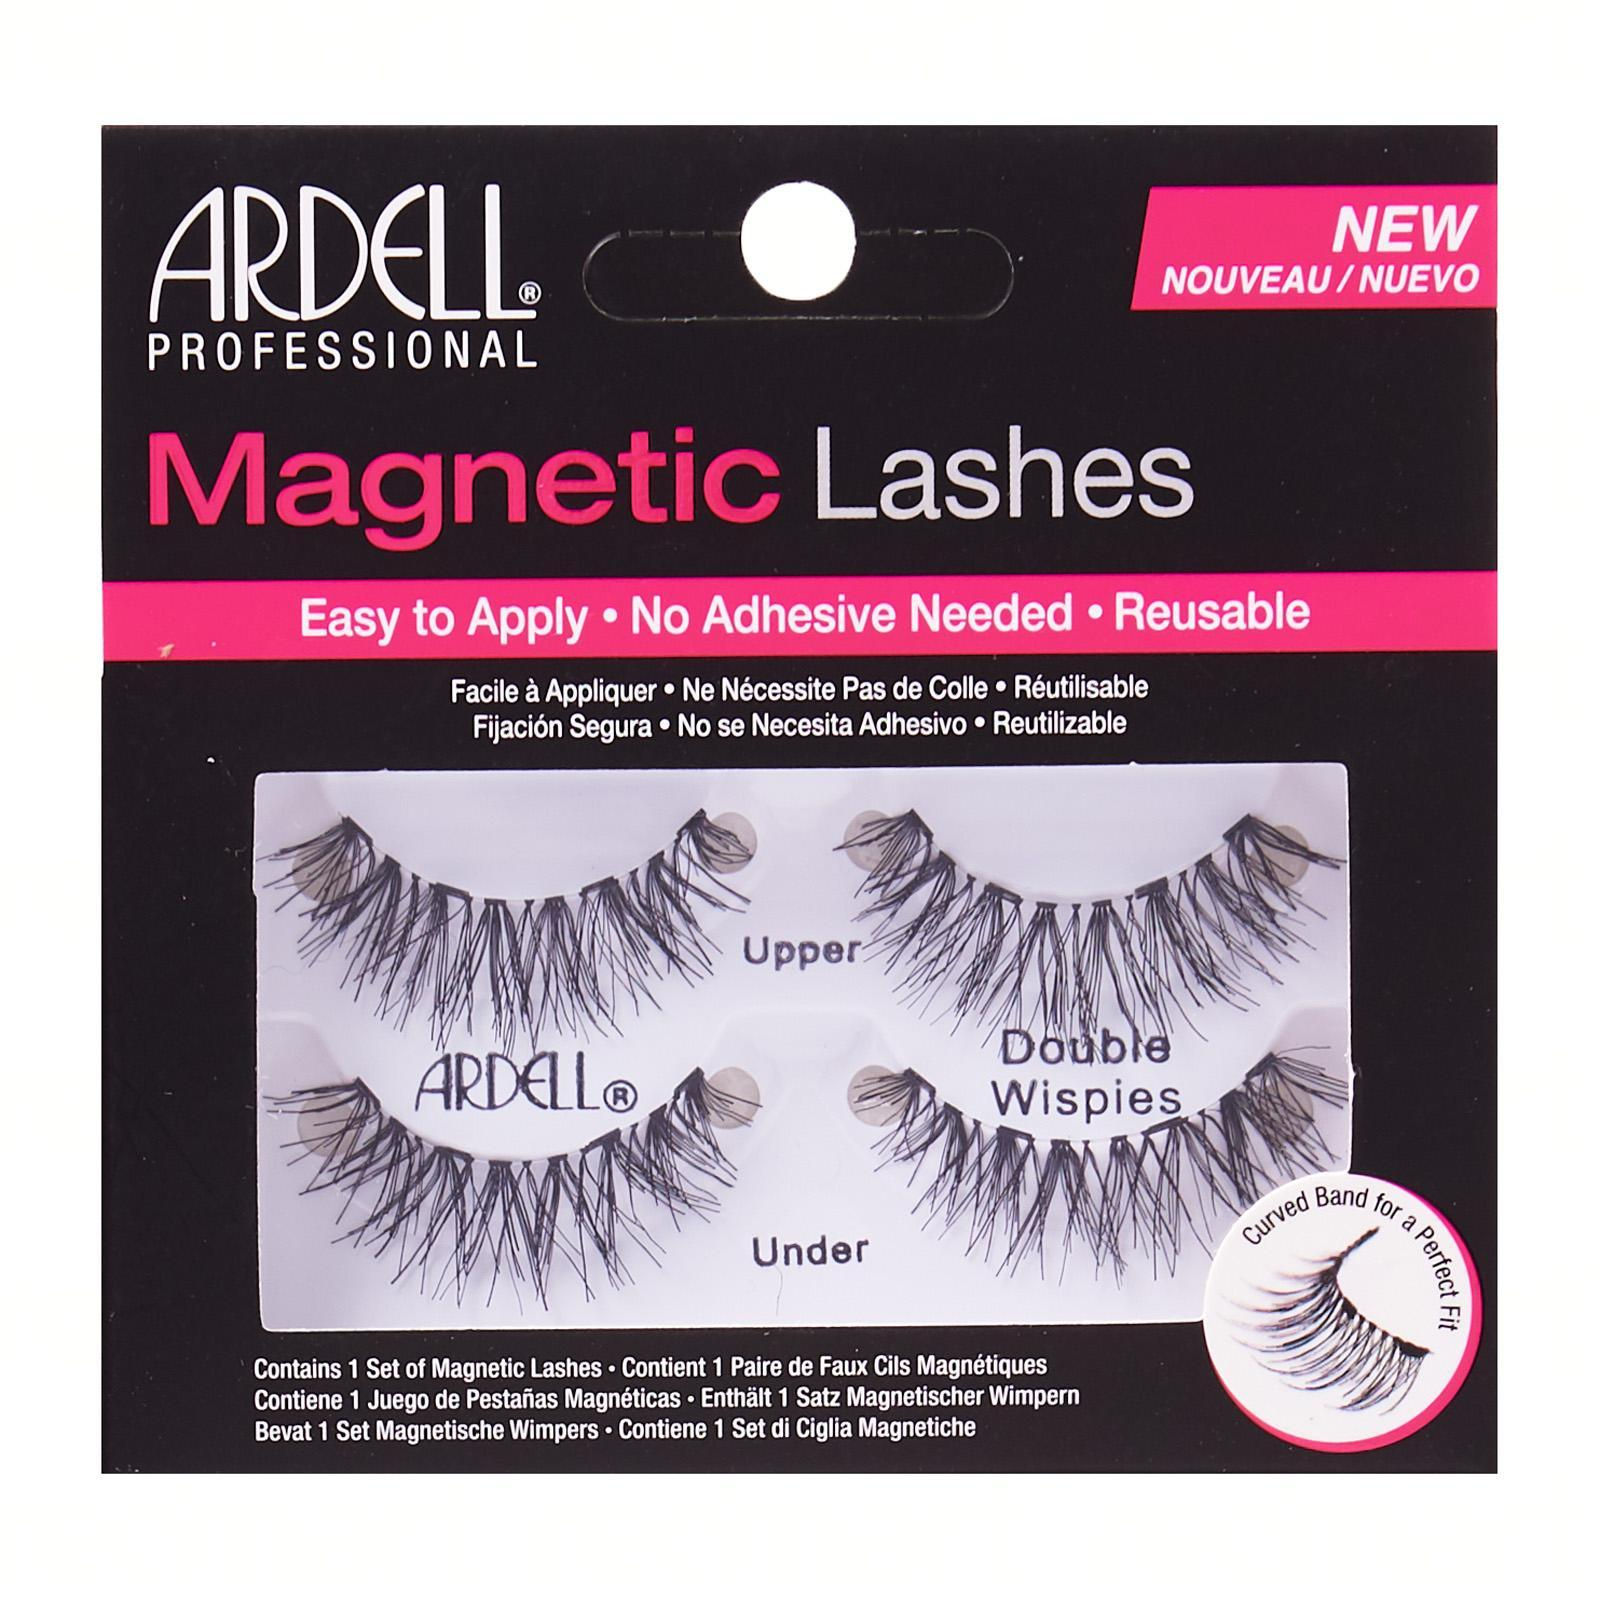 f2f5cd51202 Latest Ardell Eyelid Tape & Glue Products | Enjoy Huge Discounts ...